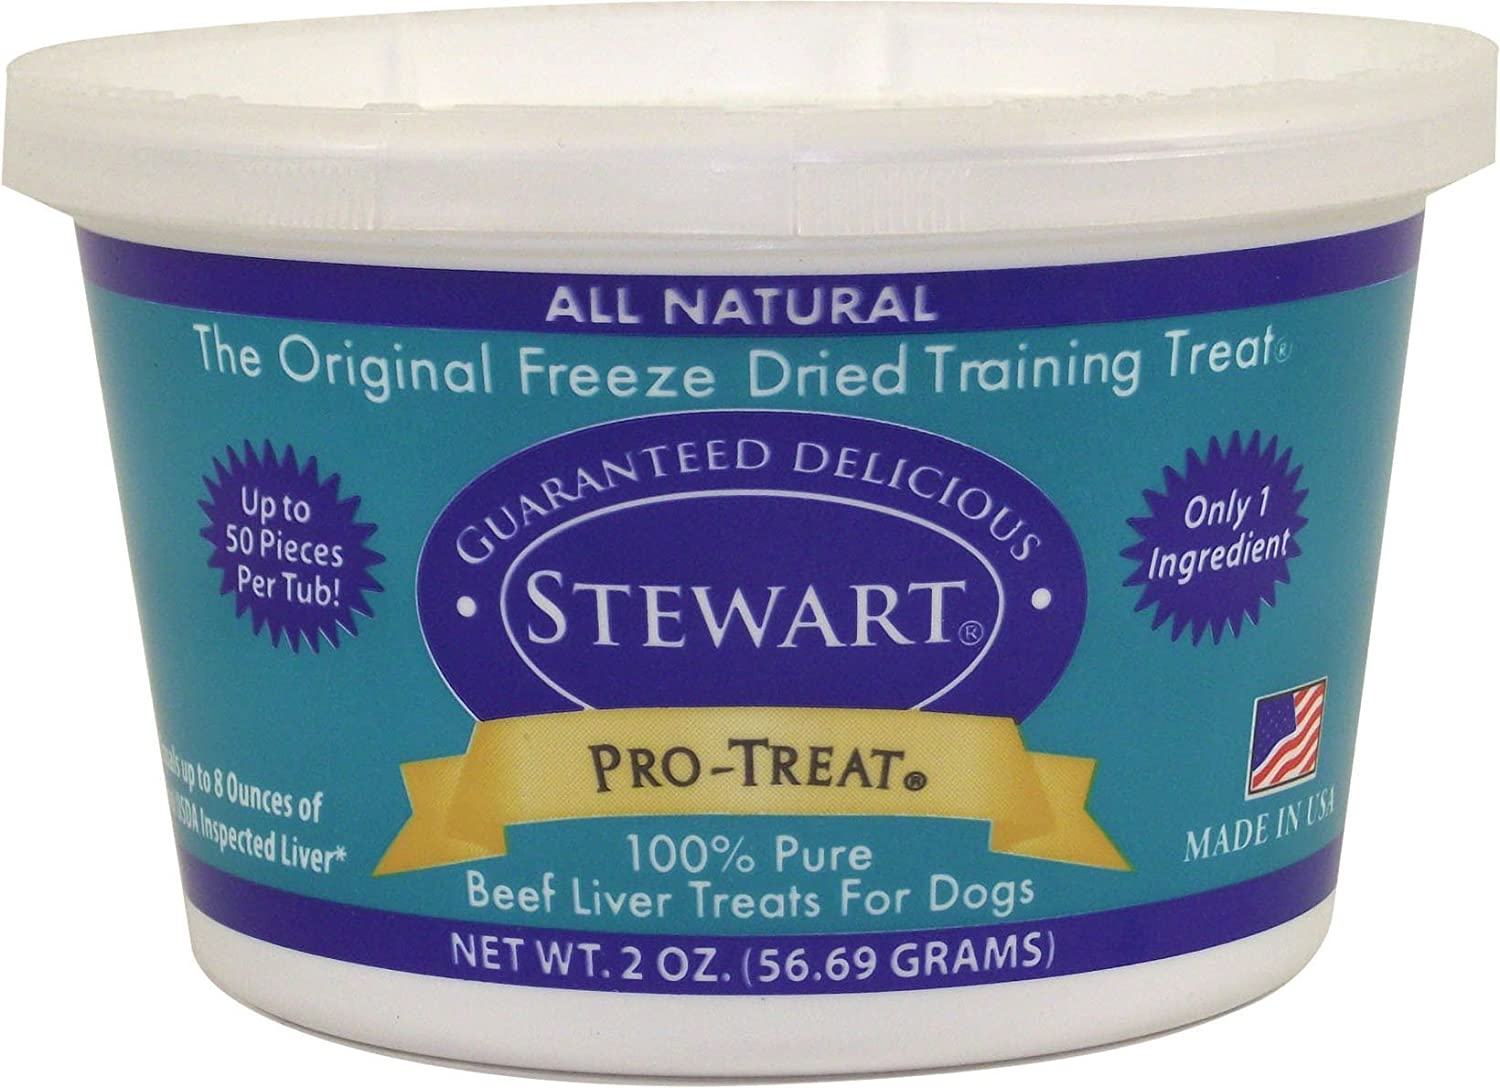 Stewart Freeze Dried Beef Liver Dog Treats, Grain Free, All Natural, Made in USA by Pro-Treat, 2 oz, Resealable Tub